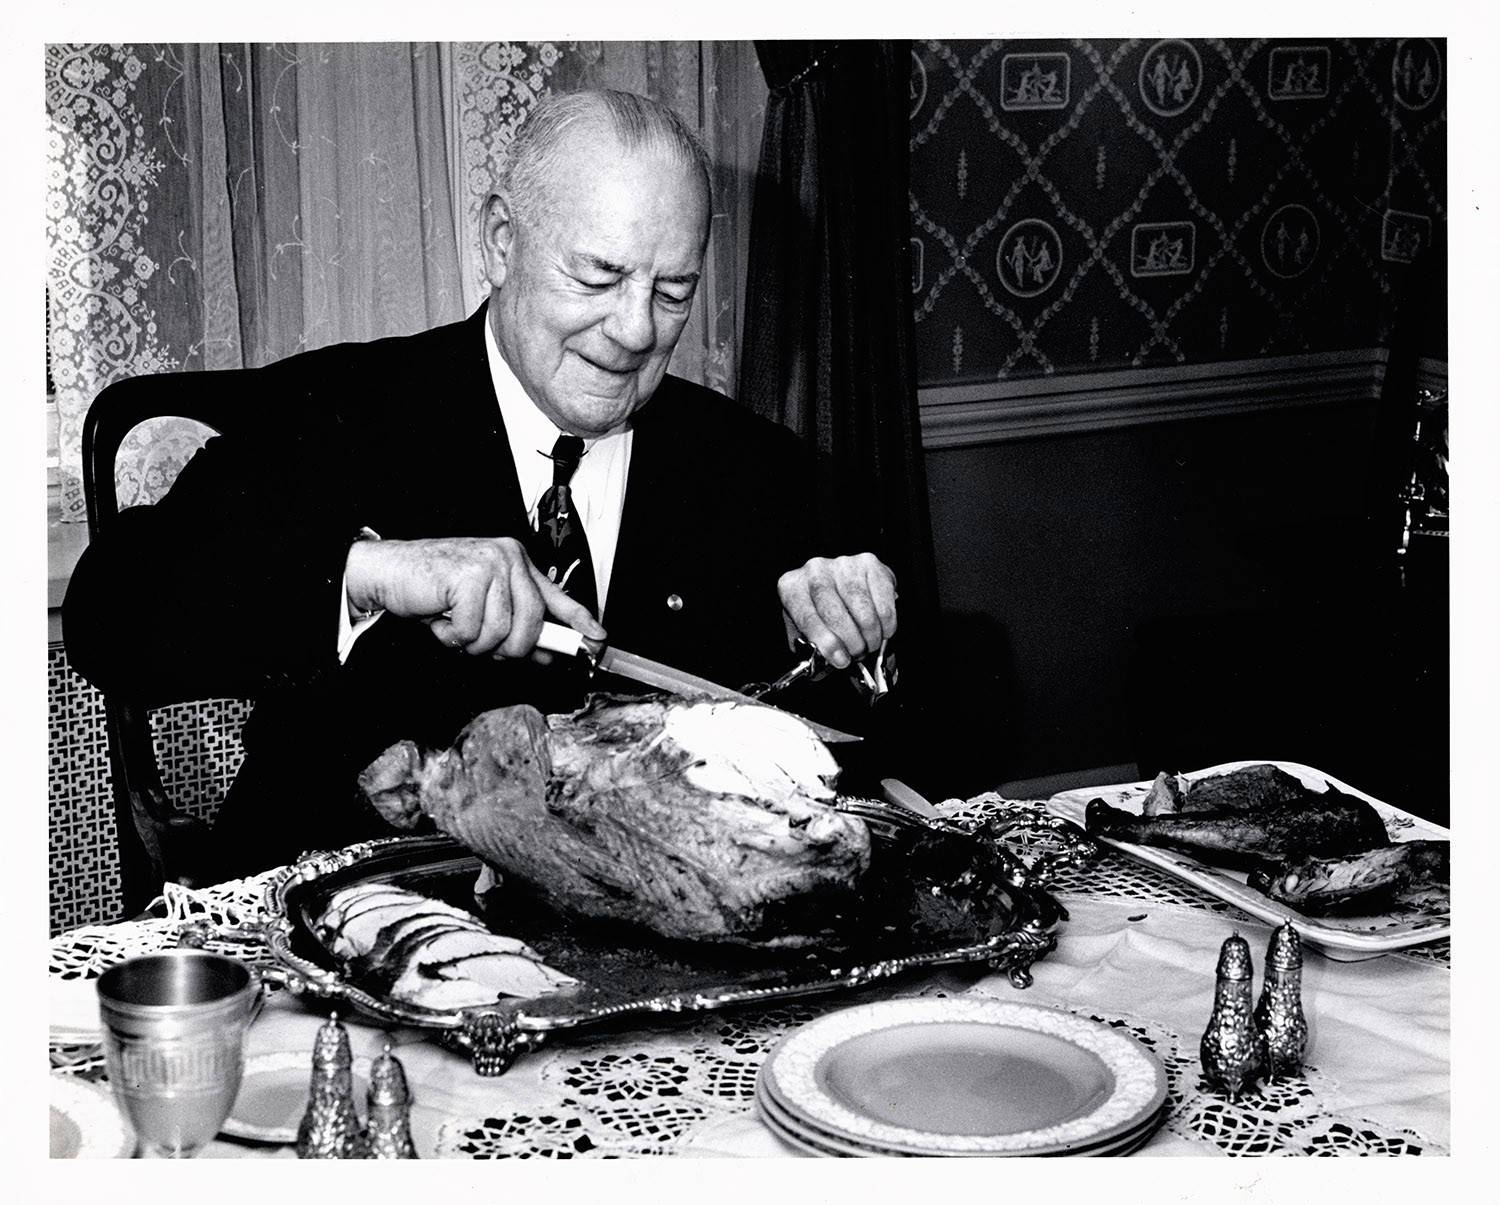 If he lived today Duncan Hines, shown here carving a turkey in 1953, would be the world's most famous food blogger.